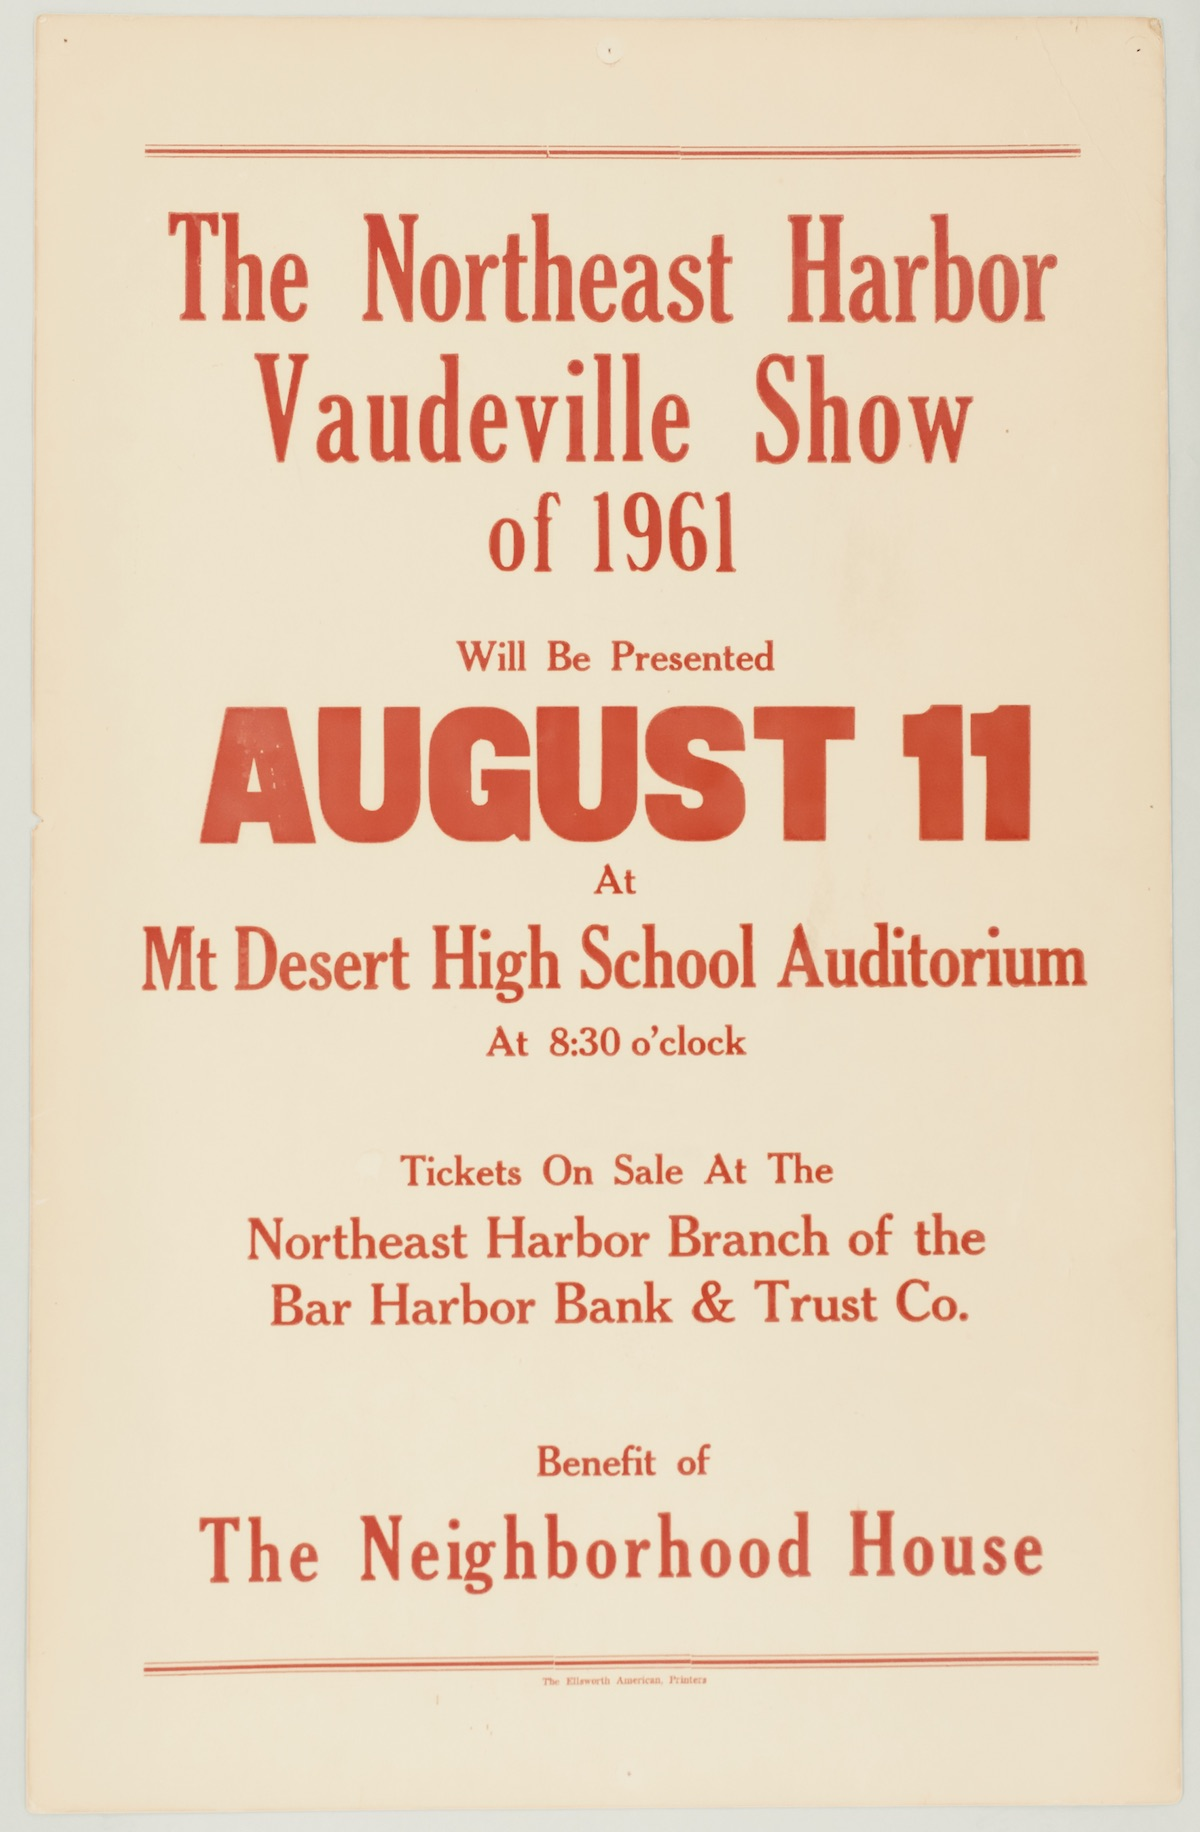 Northeast Harbor Vaudeville Show